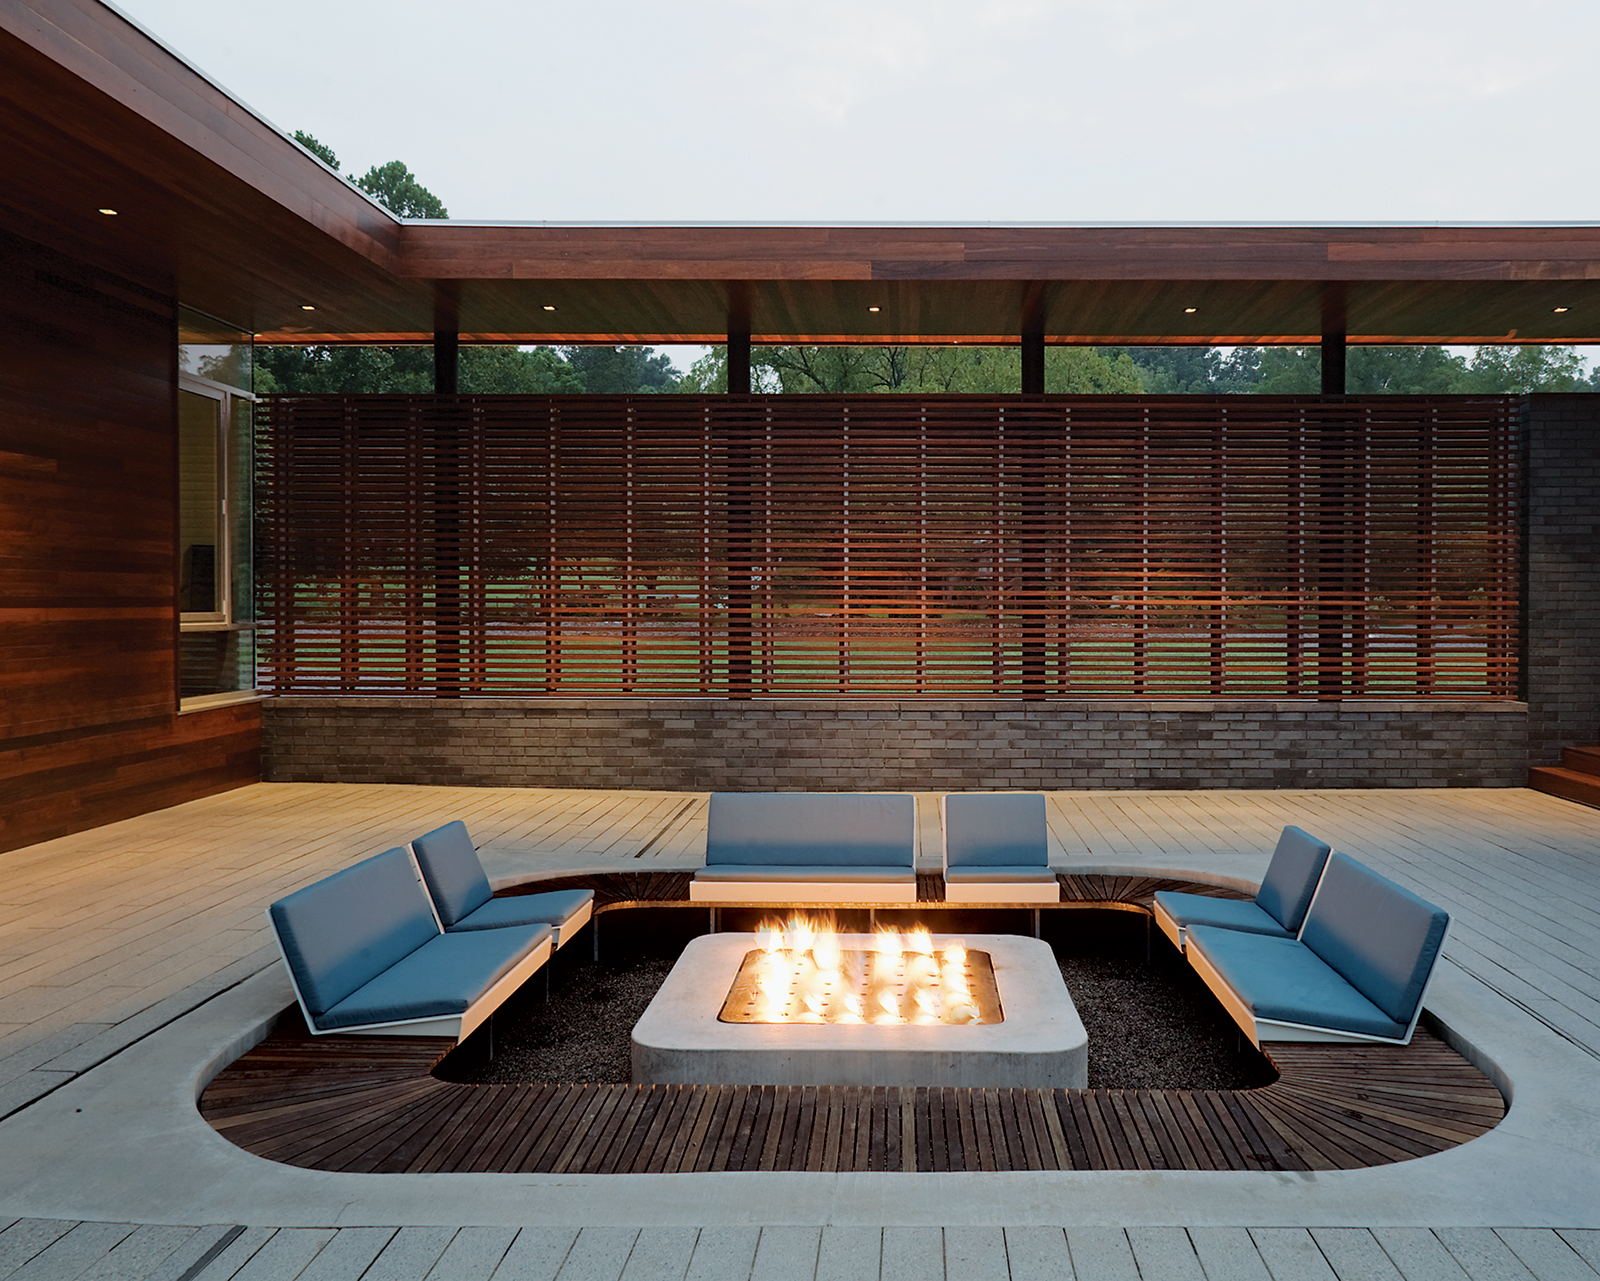 eye catching modern outdoor fireplaces turn the patio into a dreamy retreat. Black Bedroom Furniture Sets. Home Design Ideas